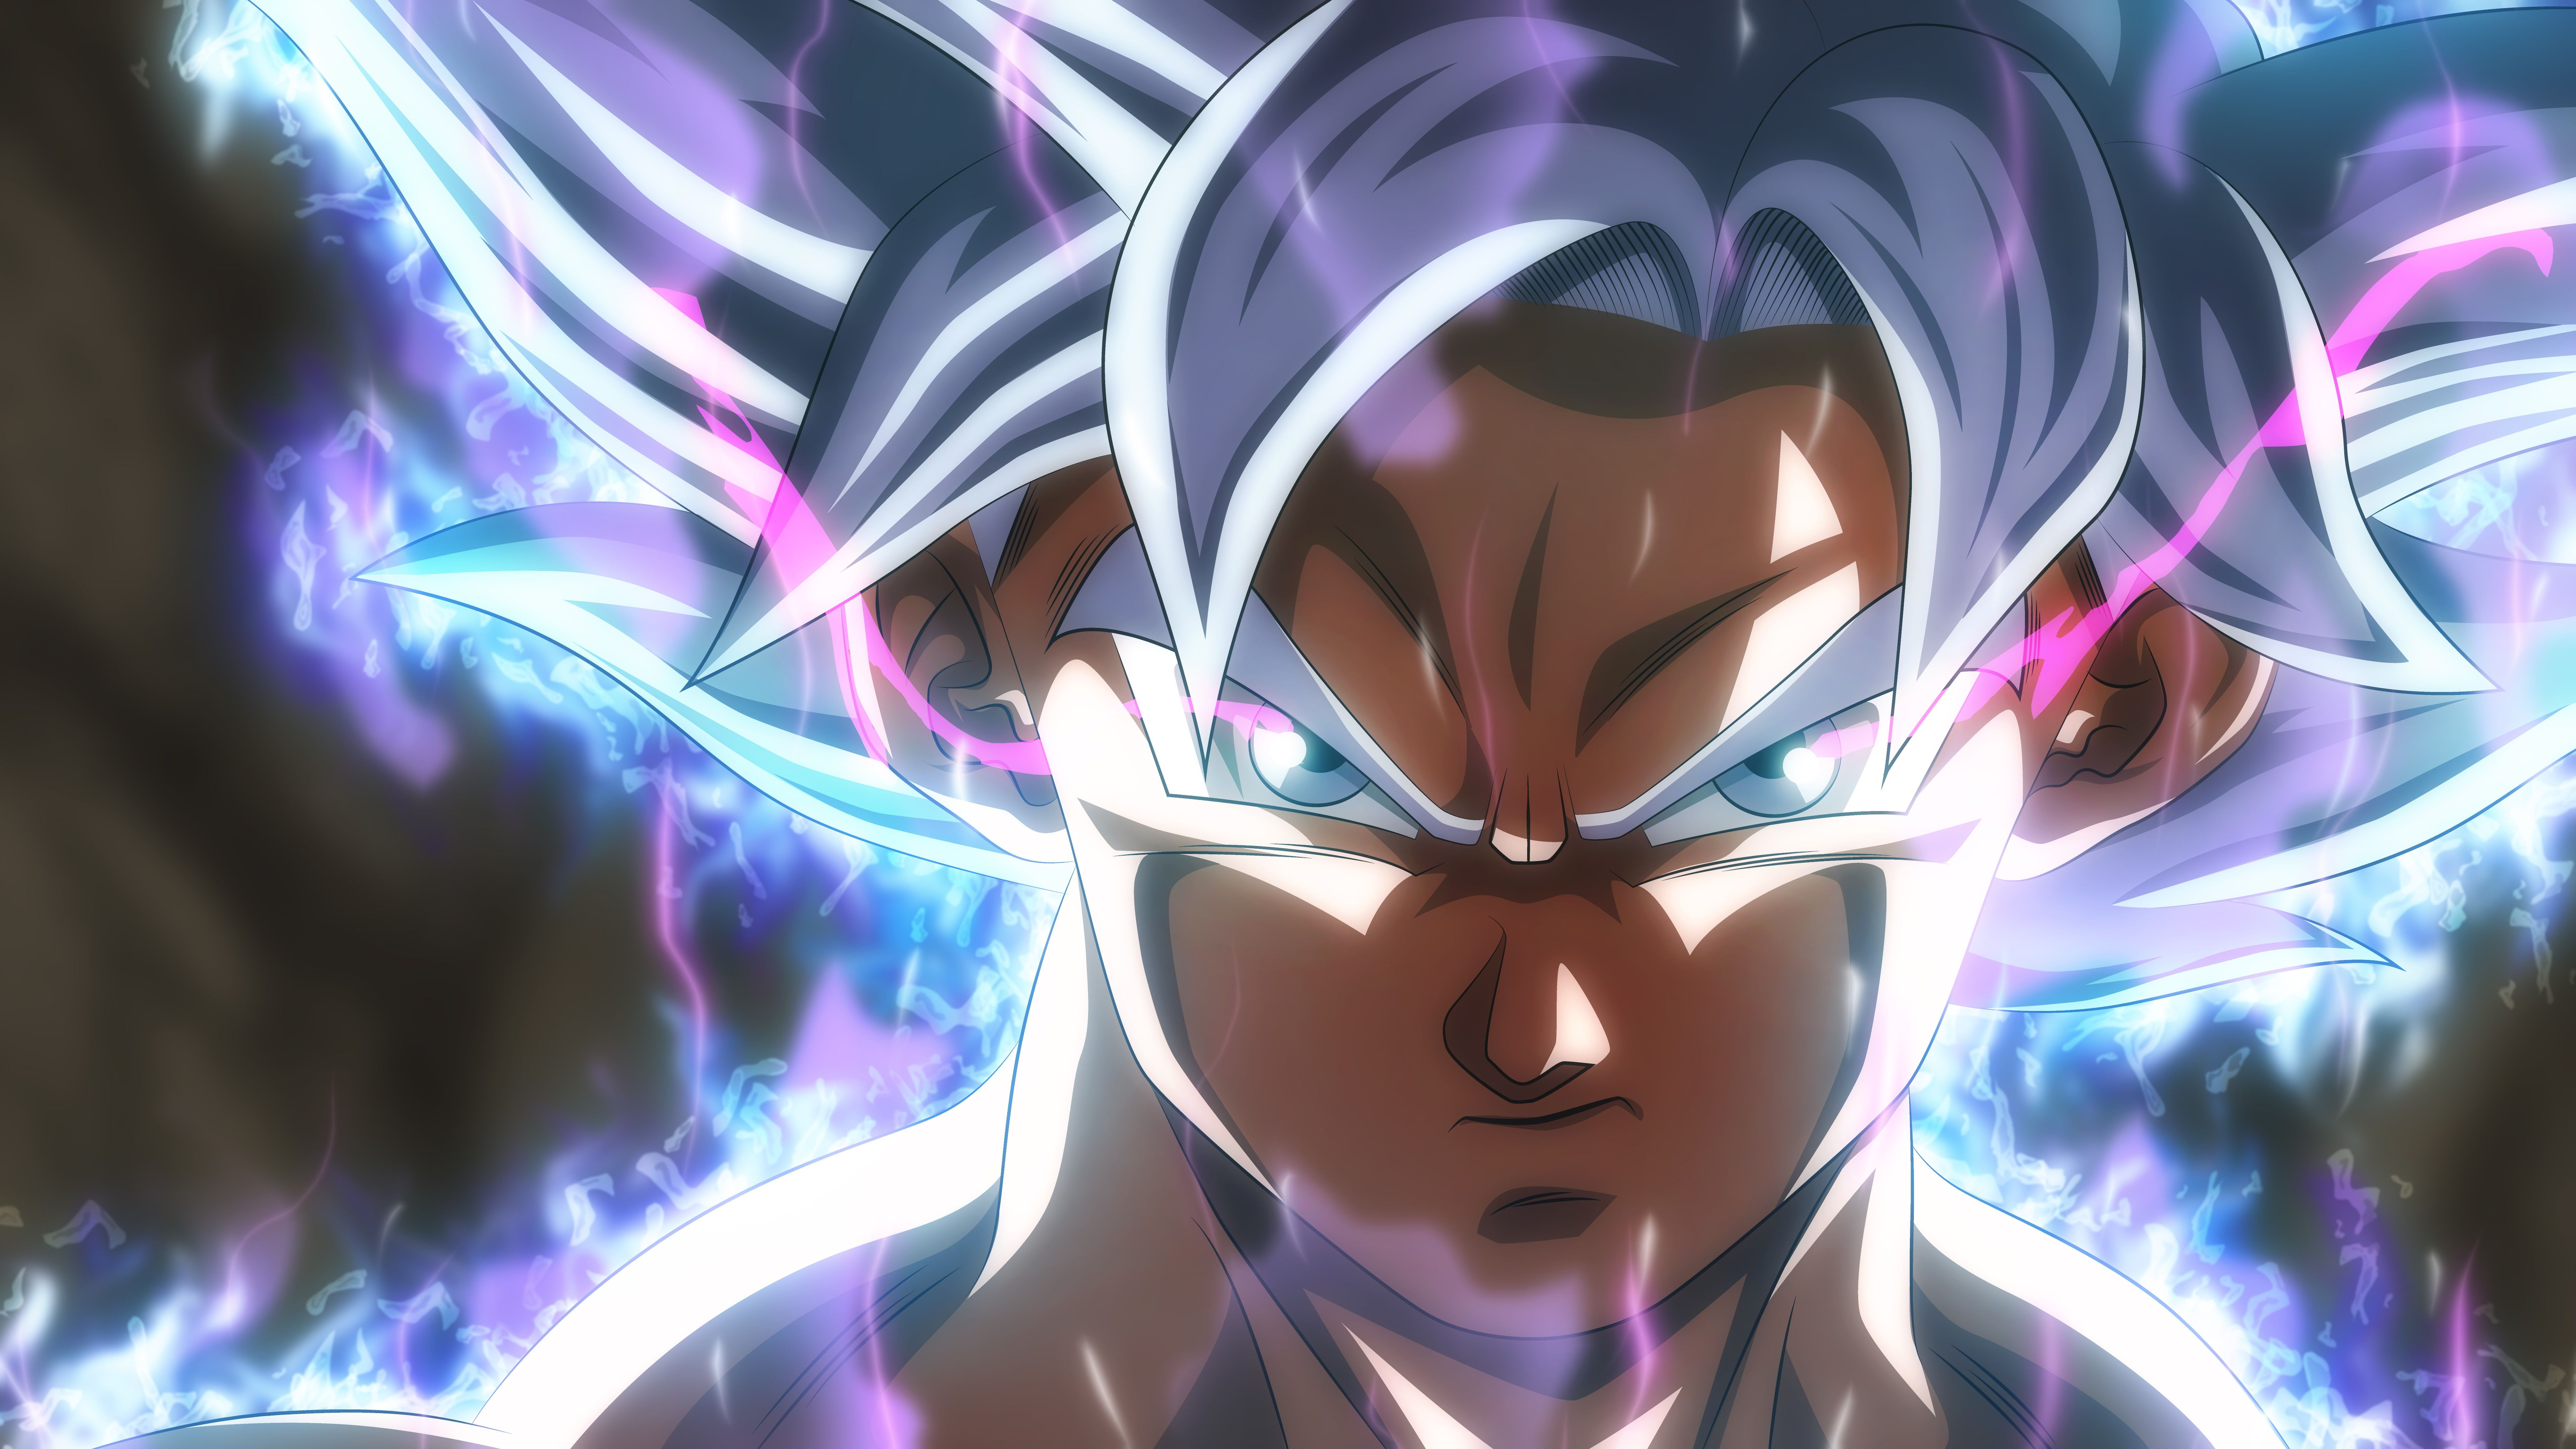 Goku Ultra Instinct Live Wallpaper Download For Android